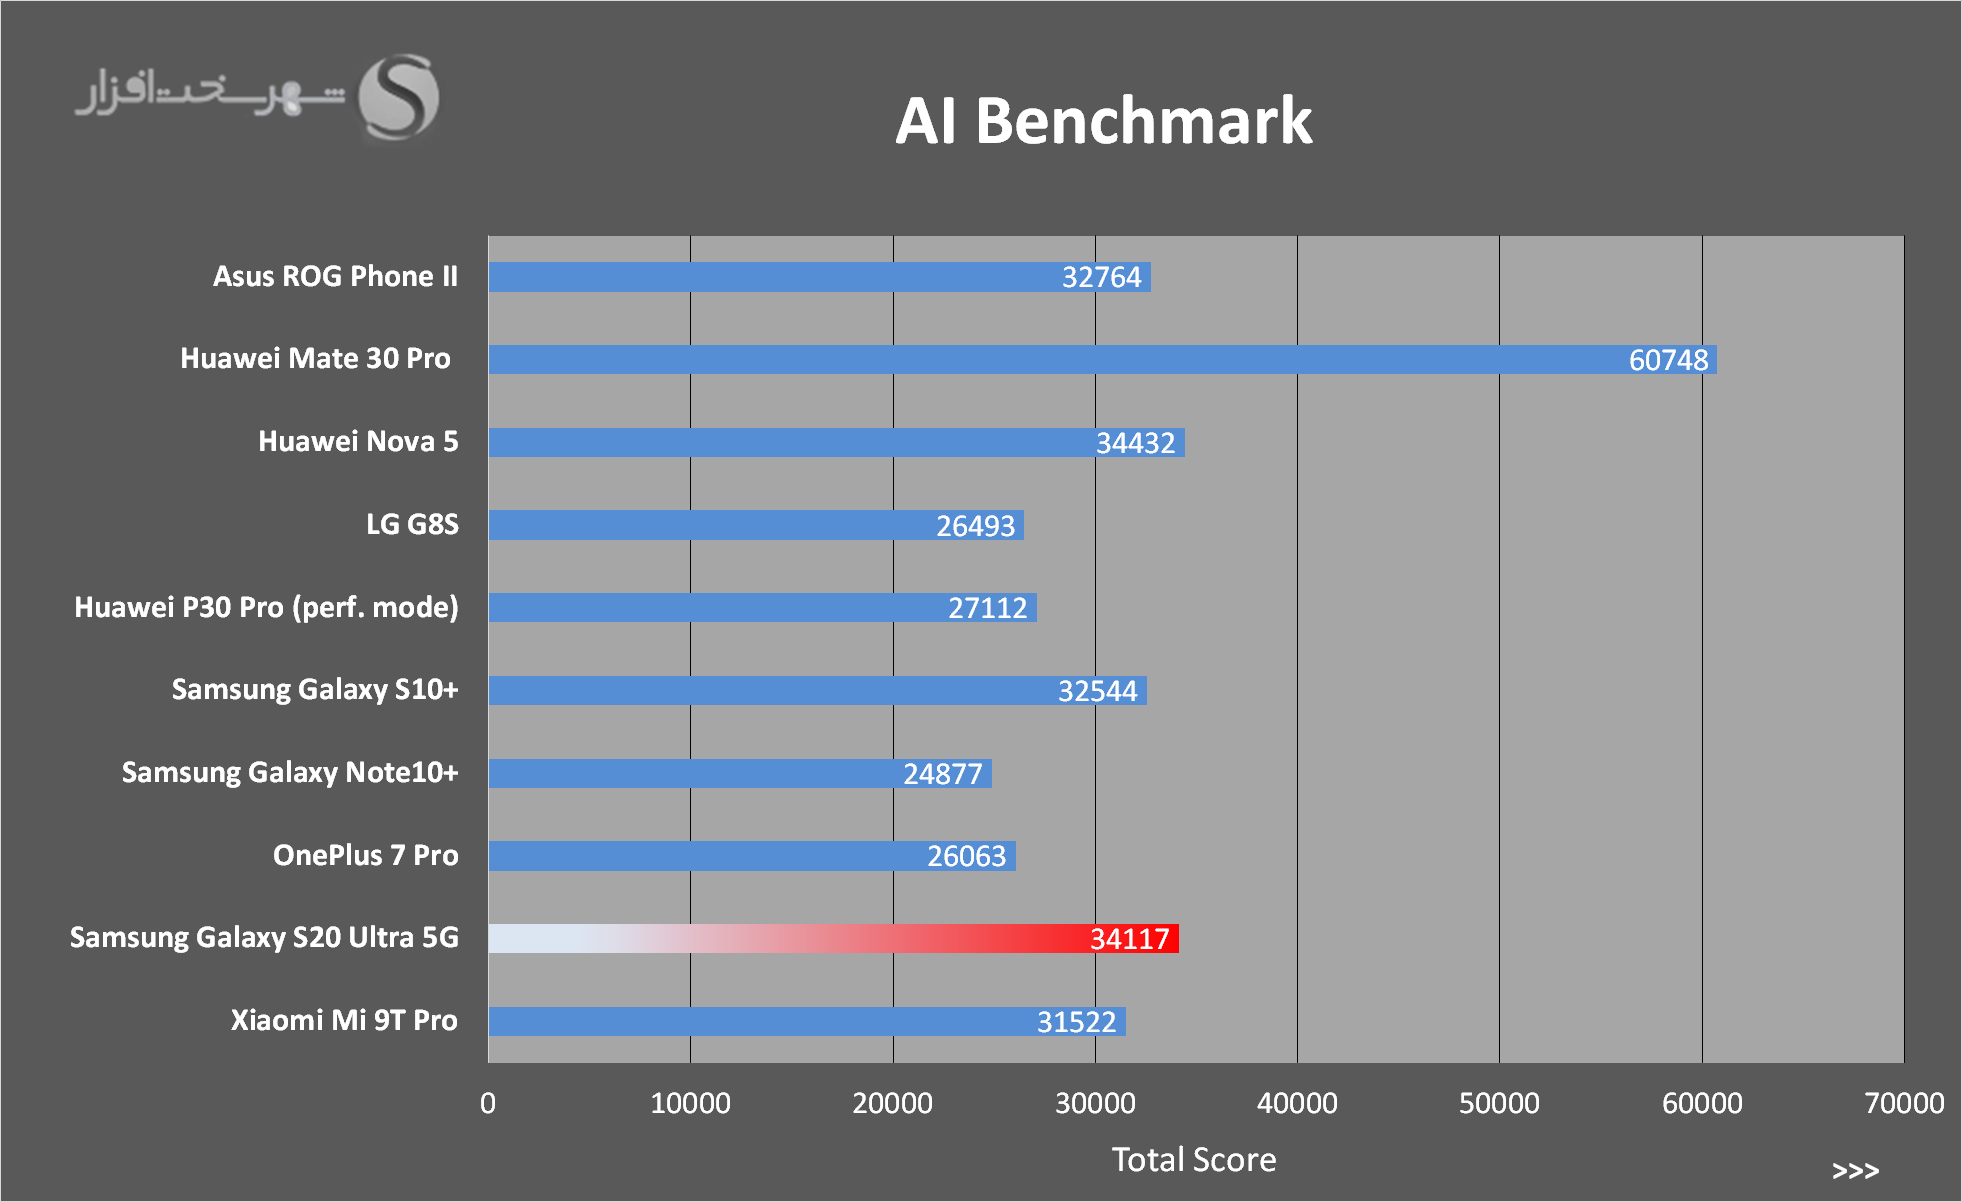 AIBenchmark.png